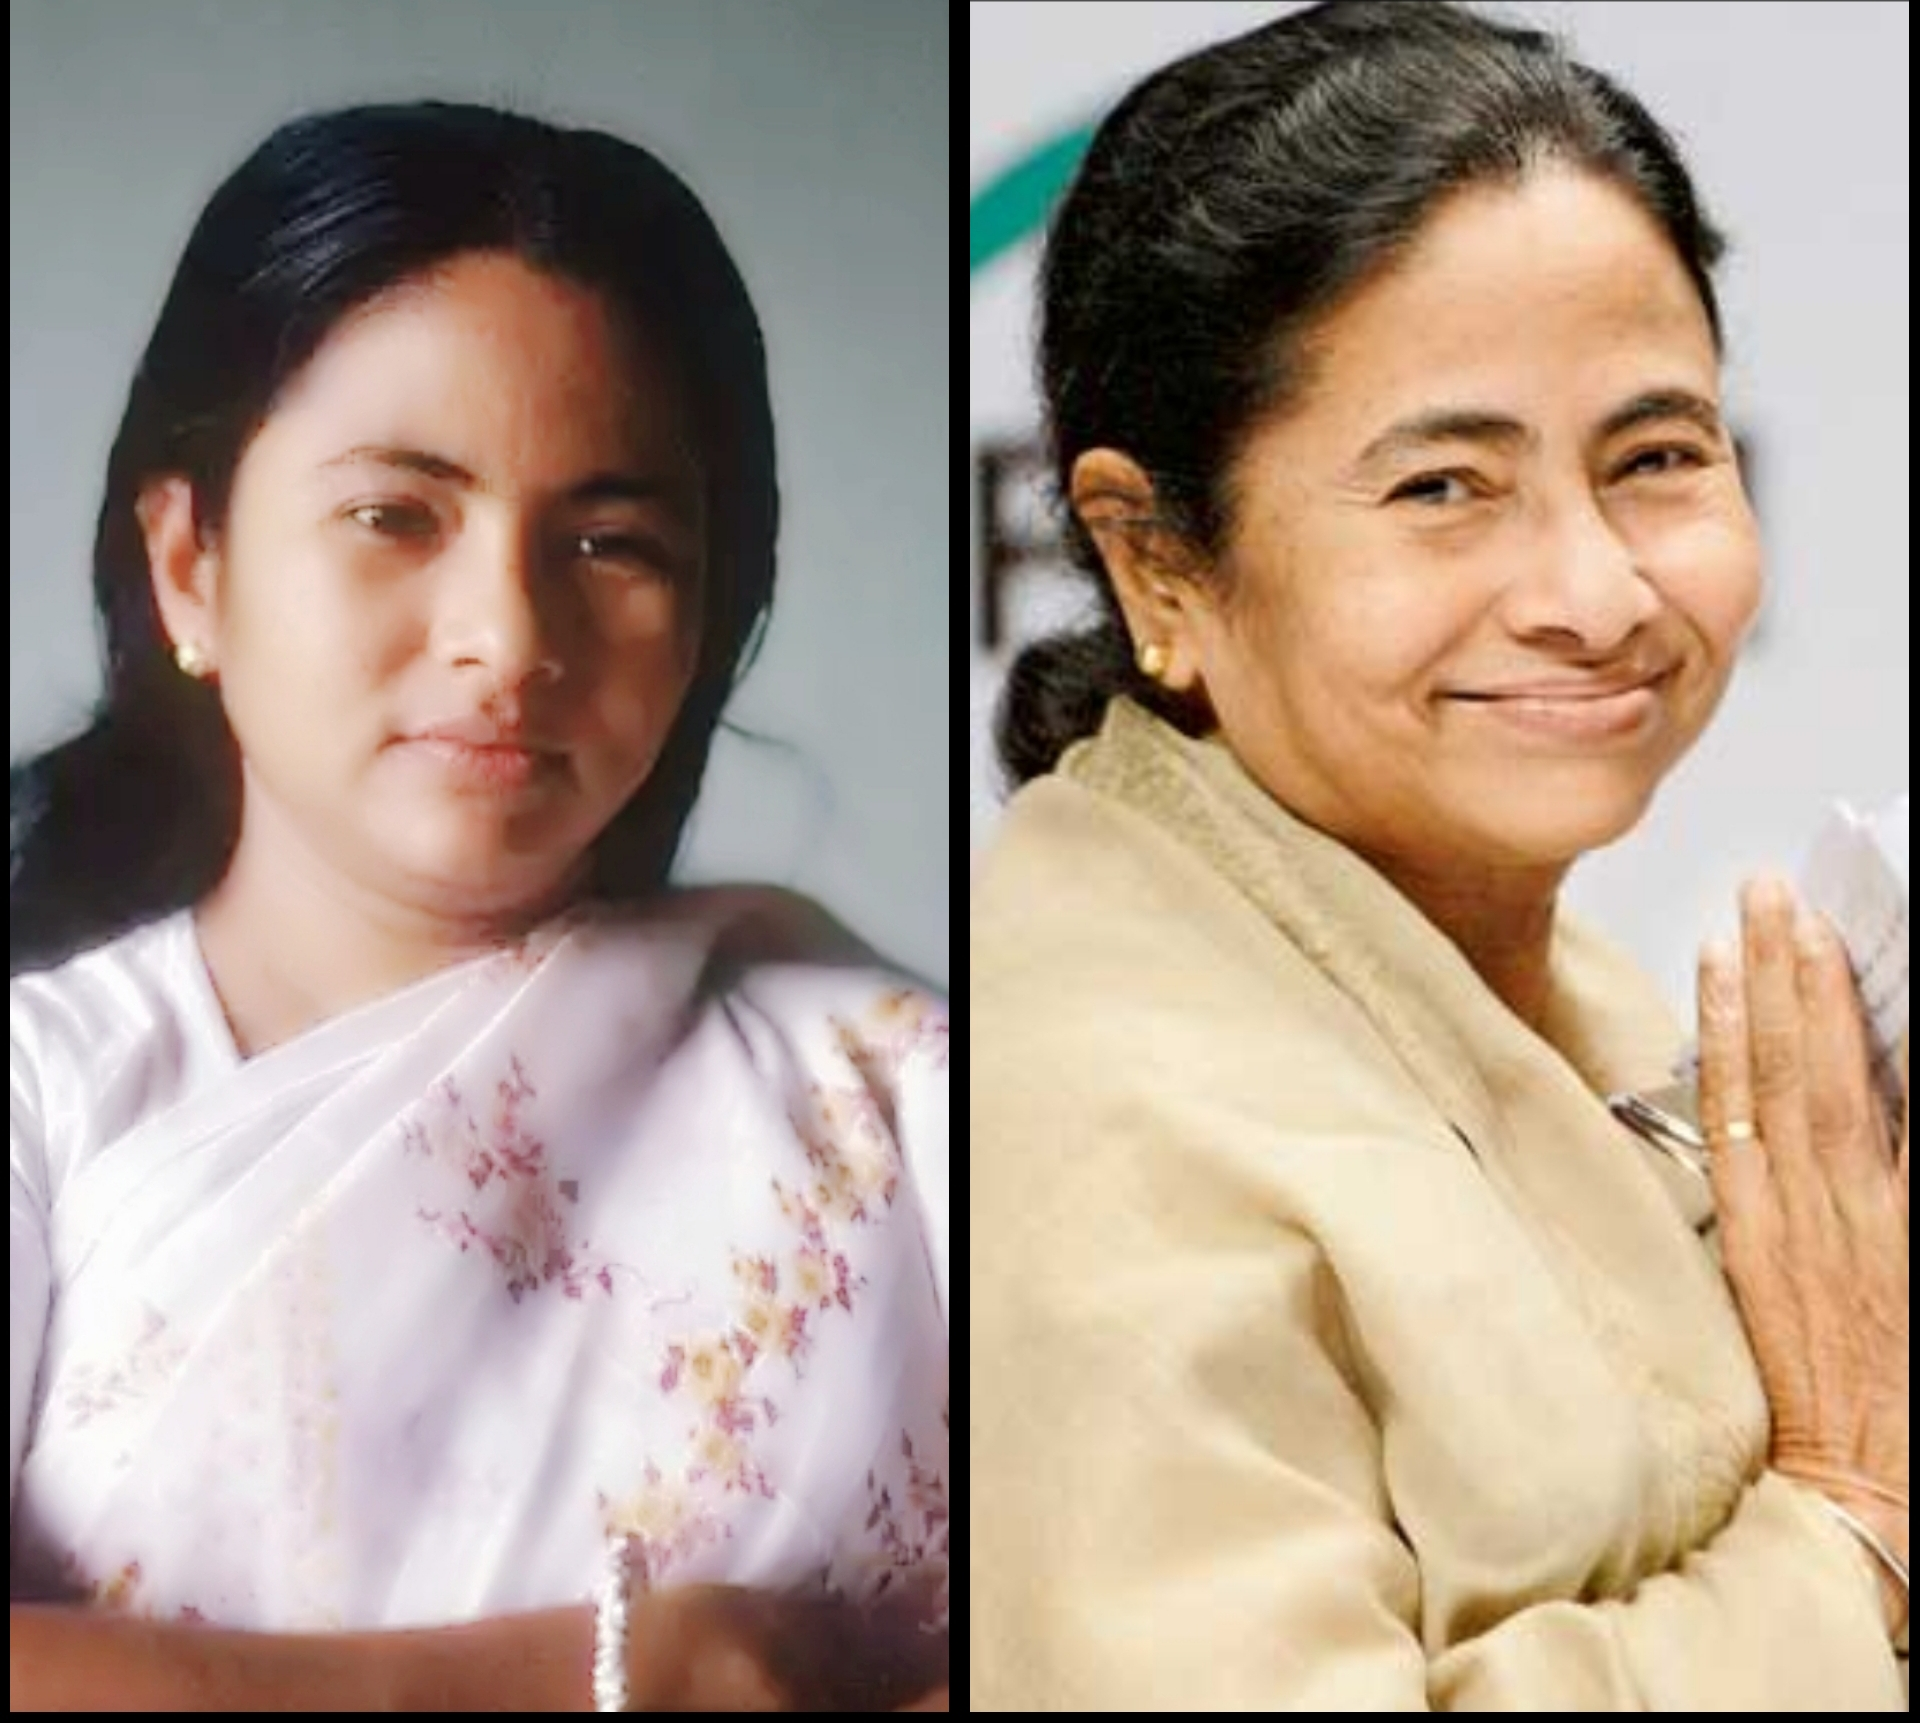 mamta banerjee, Indian Politicians, politics, unseen pictures, rare pictures,vintage pictures of Indian Politicians